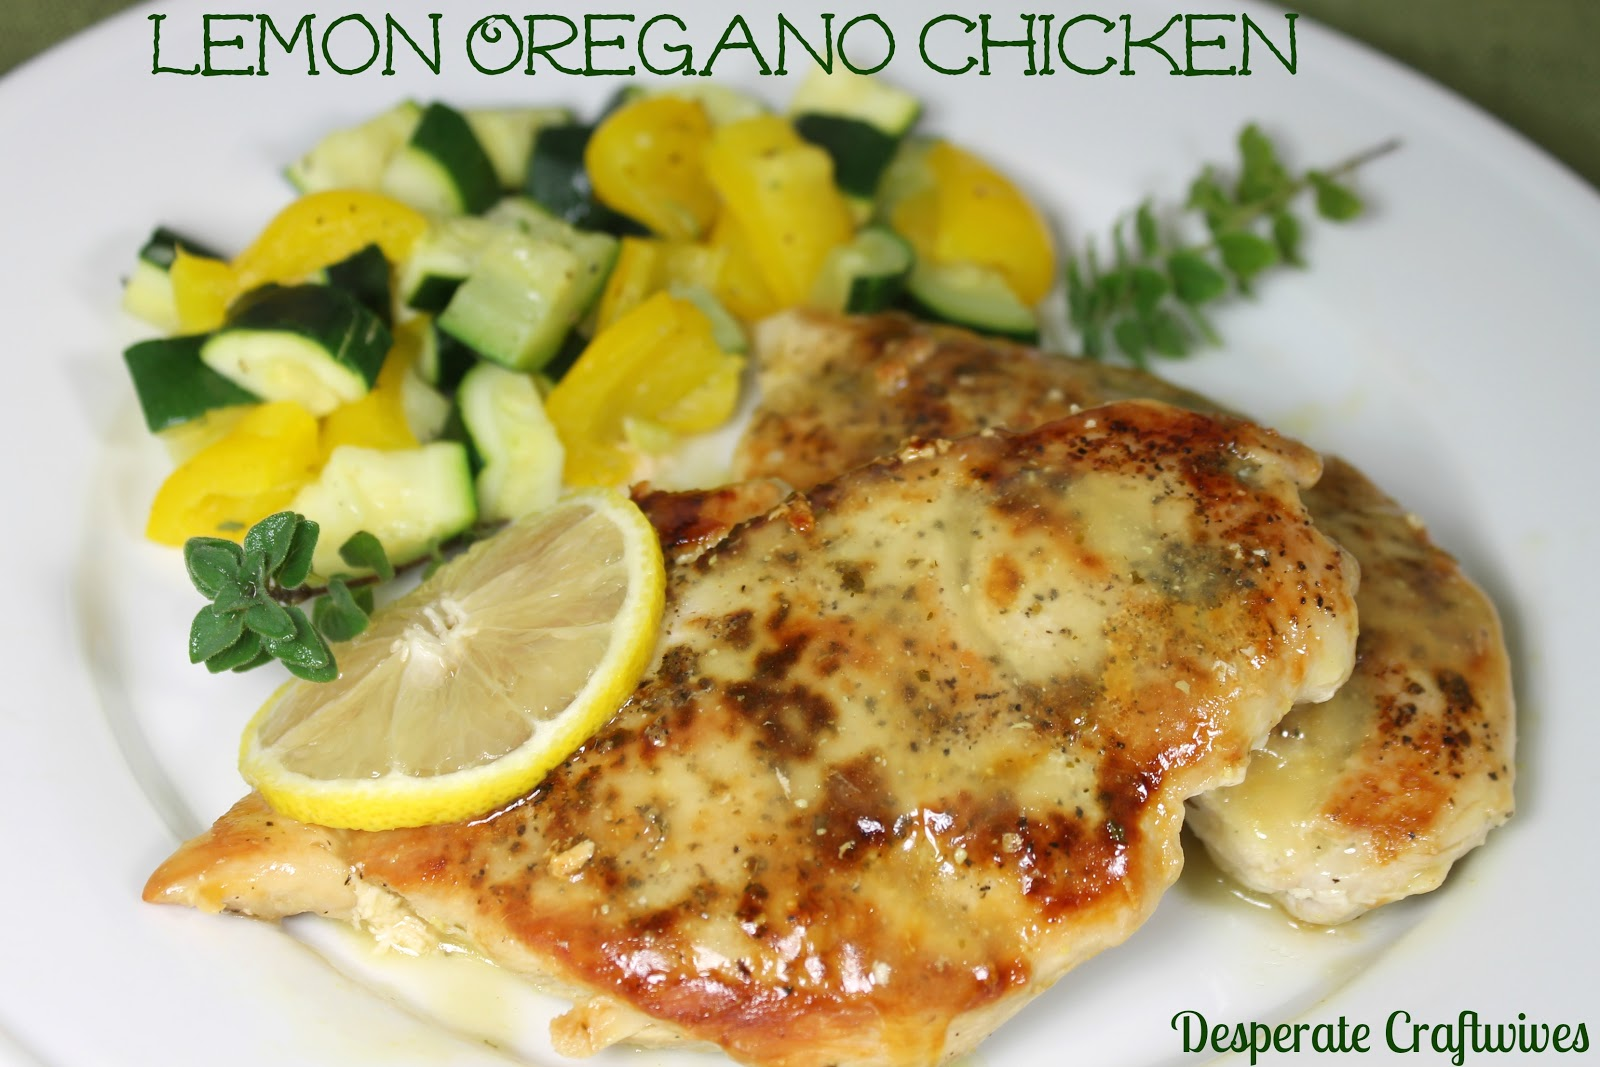 Desperate Craftwives: Lemon Oregano Chicken